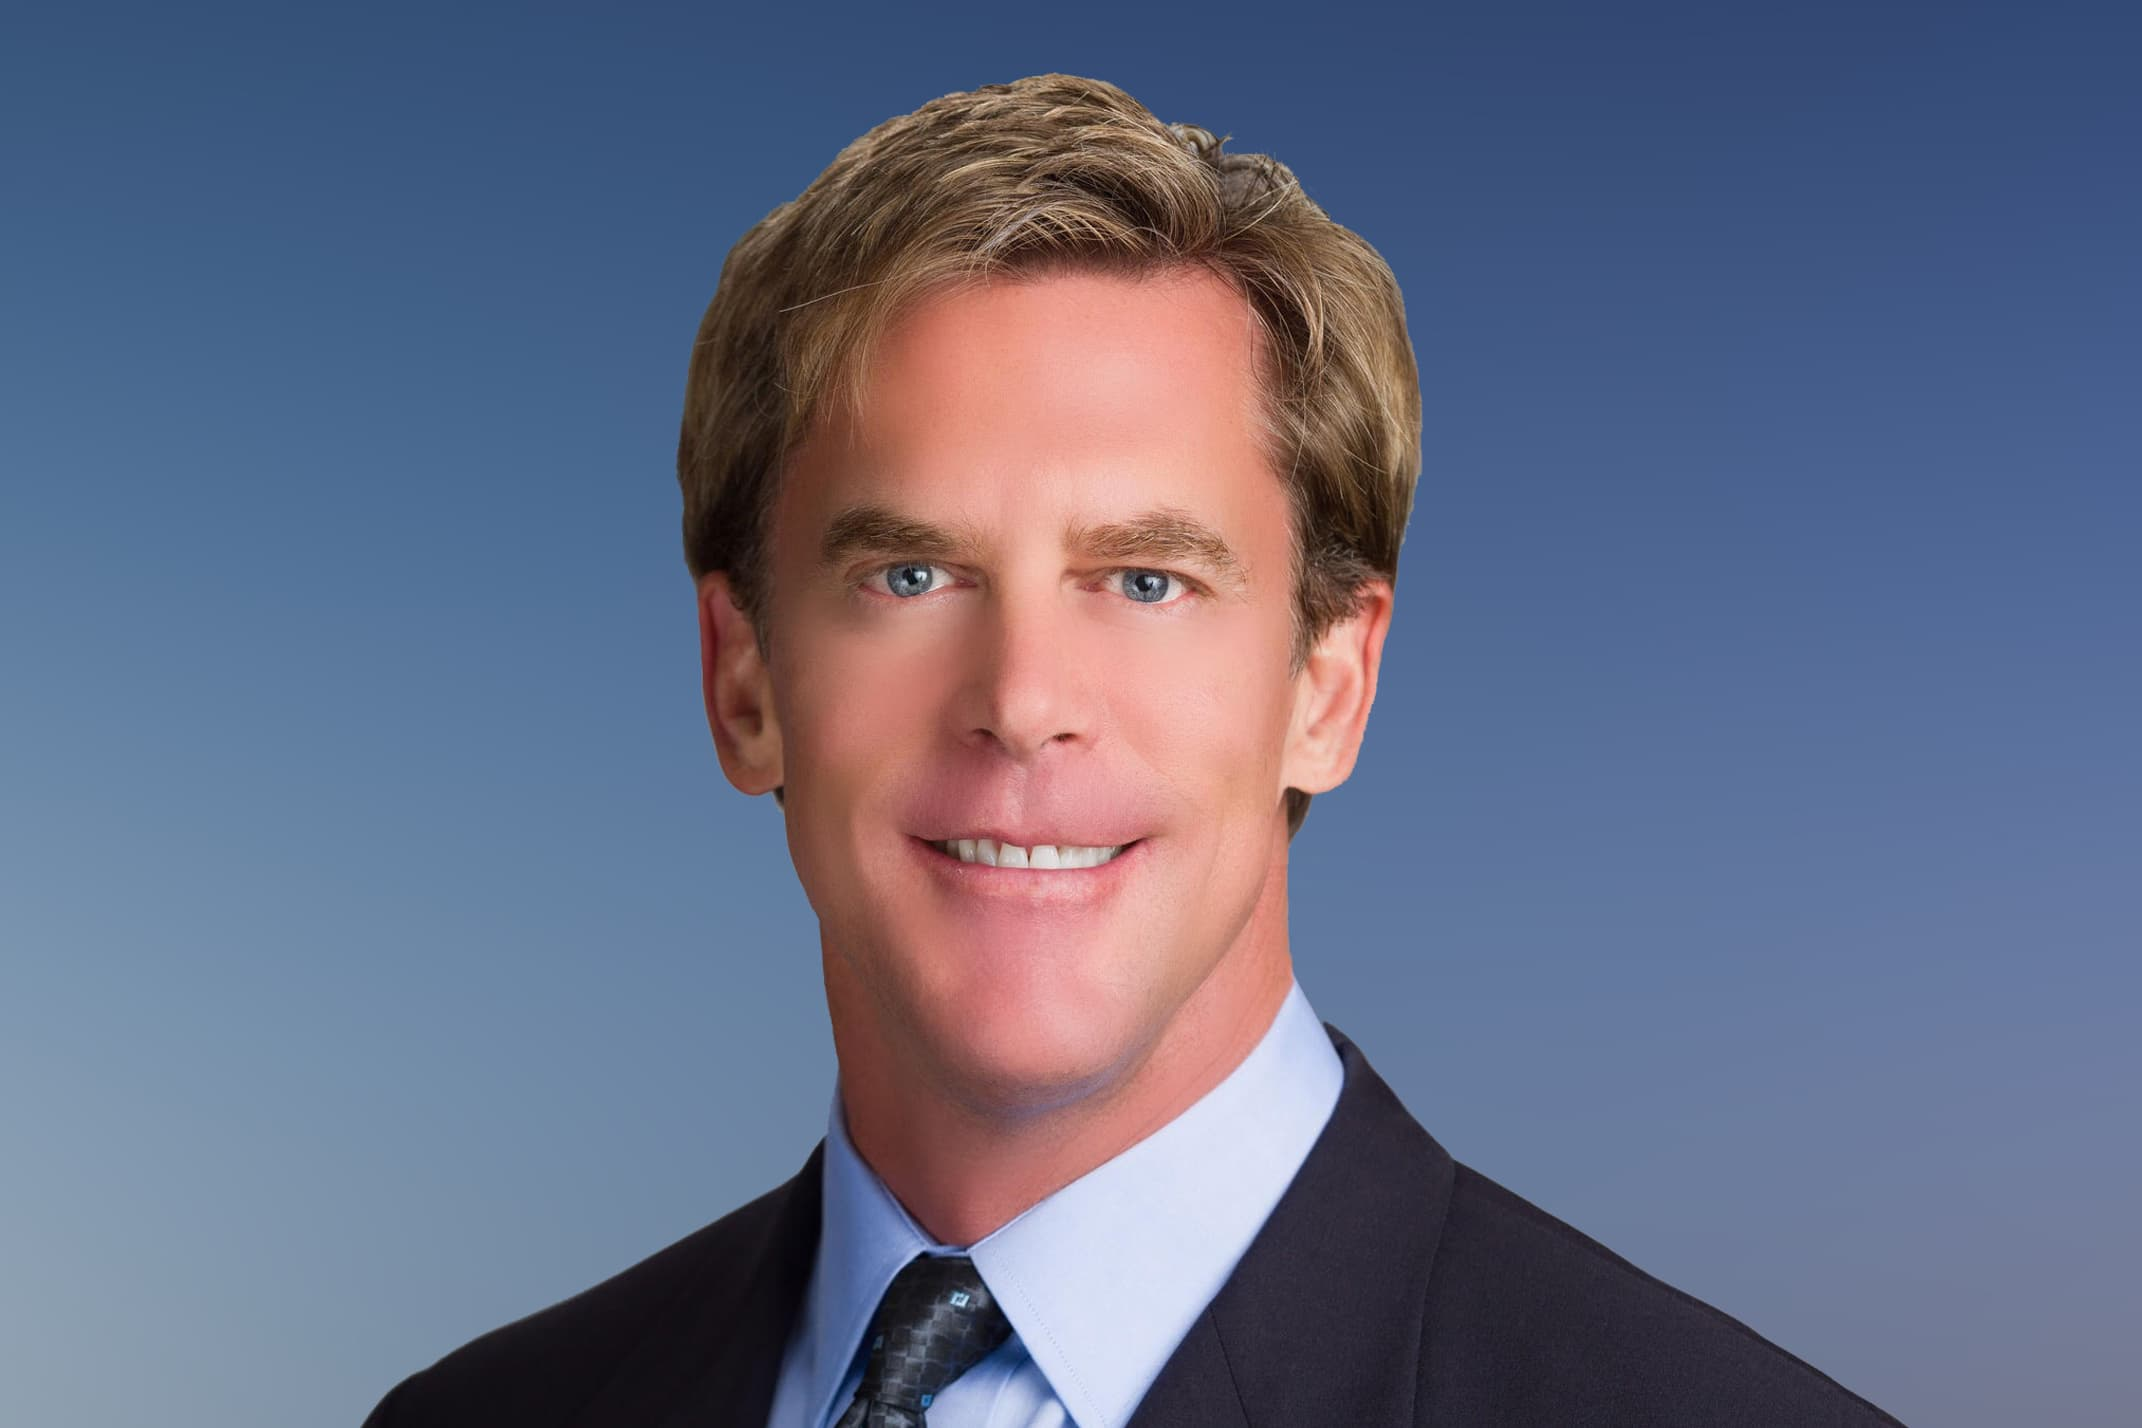 Michael Griffin ClientLook CEO